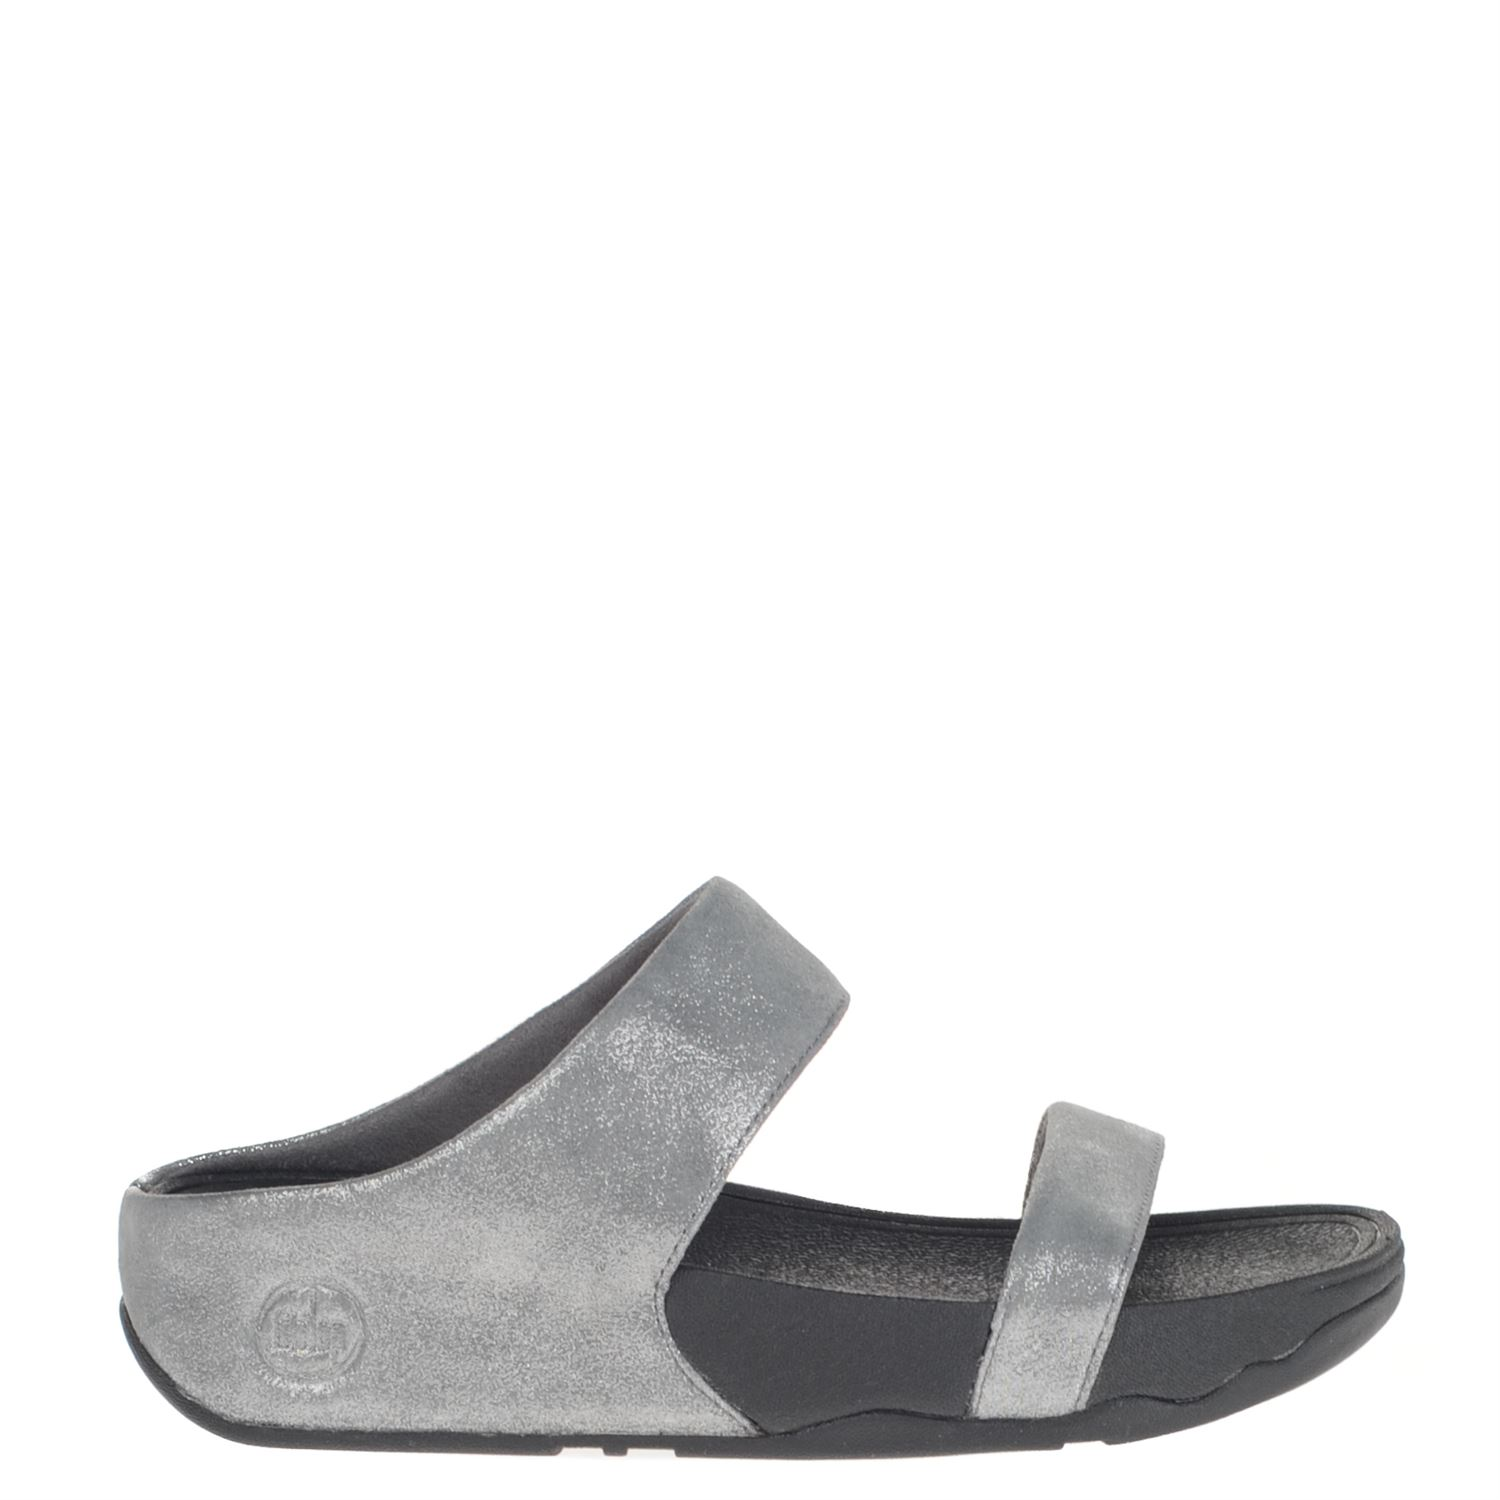 Chaussures Gris Fitflop cD7tBYXlRH